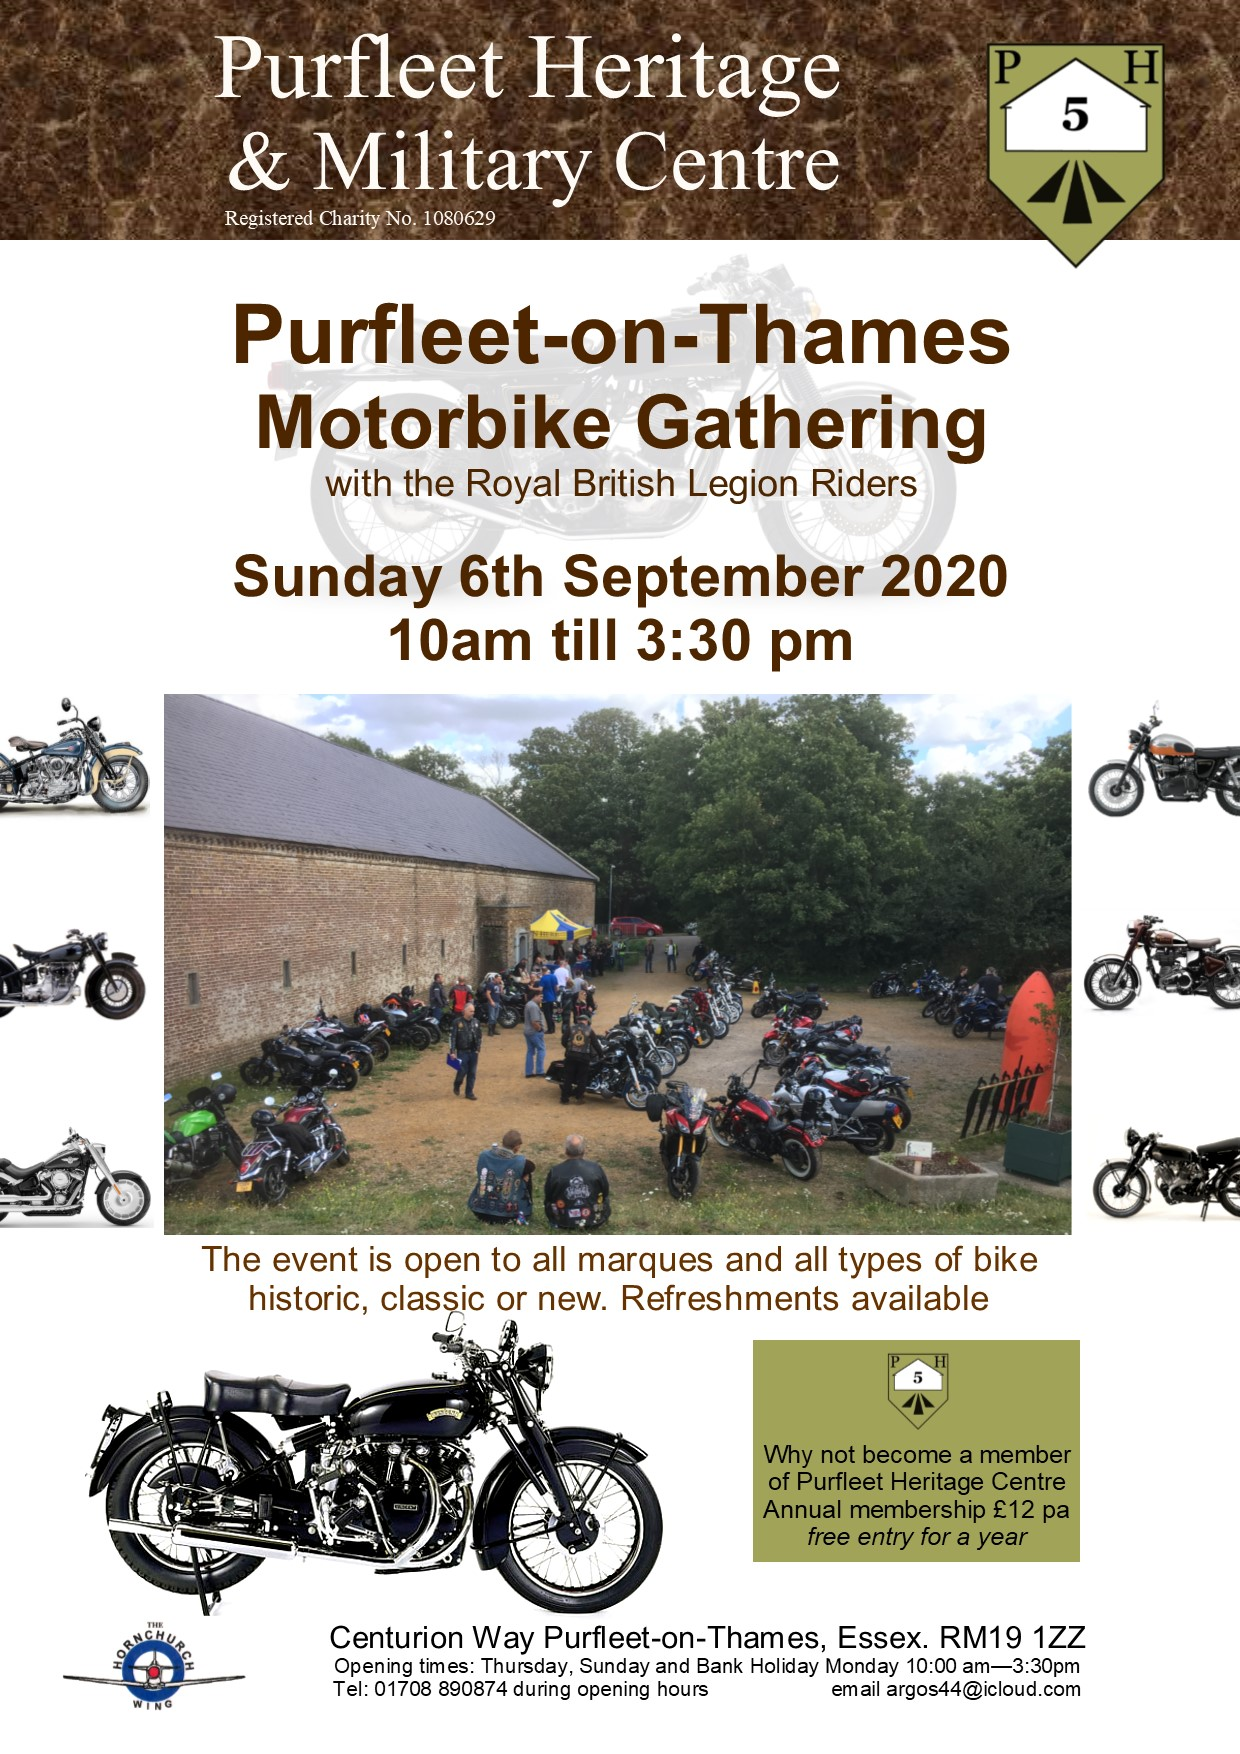 20.09.06 Purfleet Motorbike Gathering, British Legion